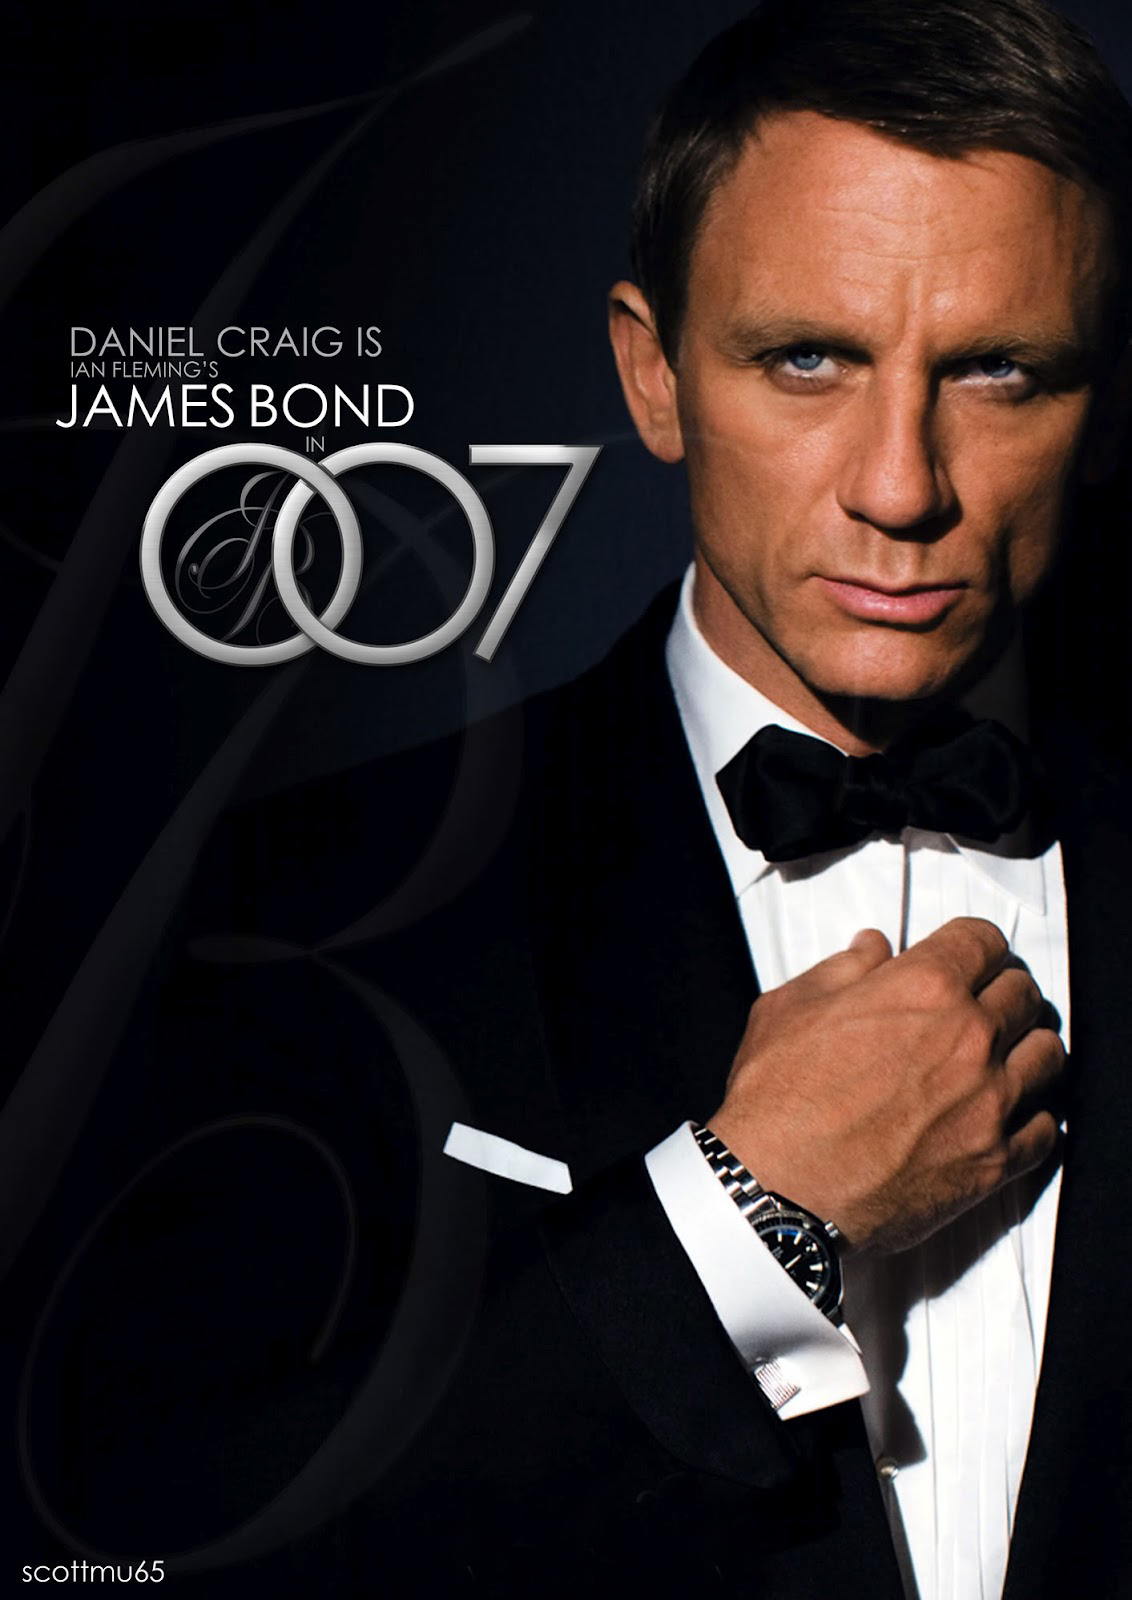 hollywood james bond best size high resolution hd wallpapers 100 free fine hd wallpapers. Black Bedroom Furniture Sets. Home Design Ideas